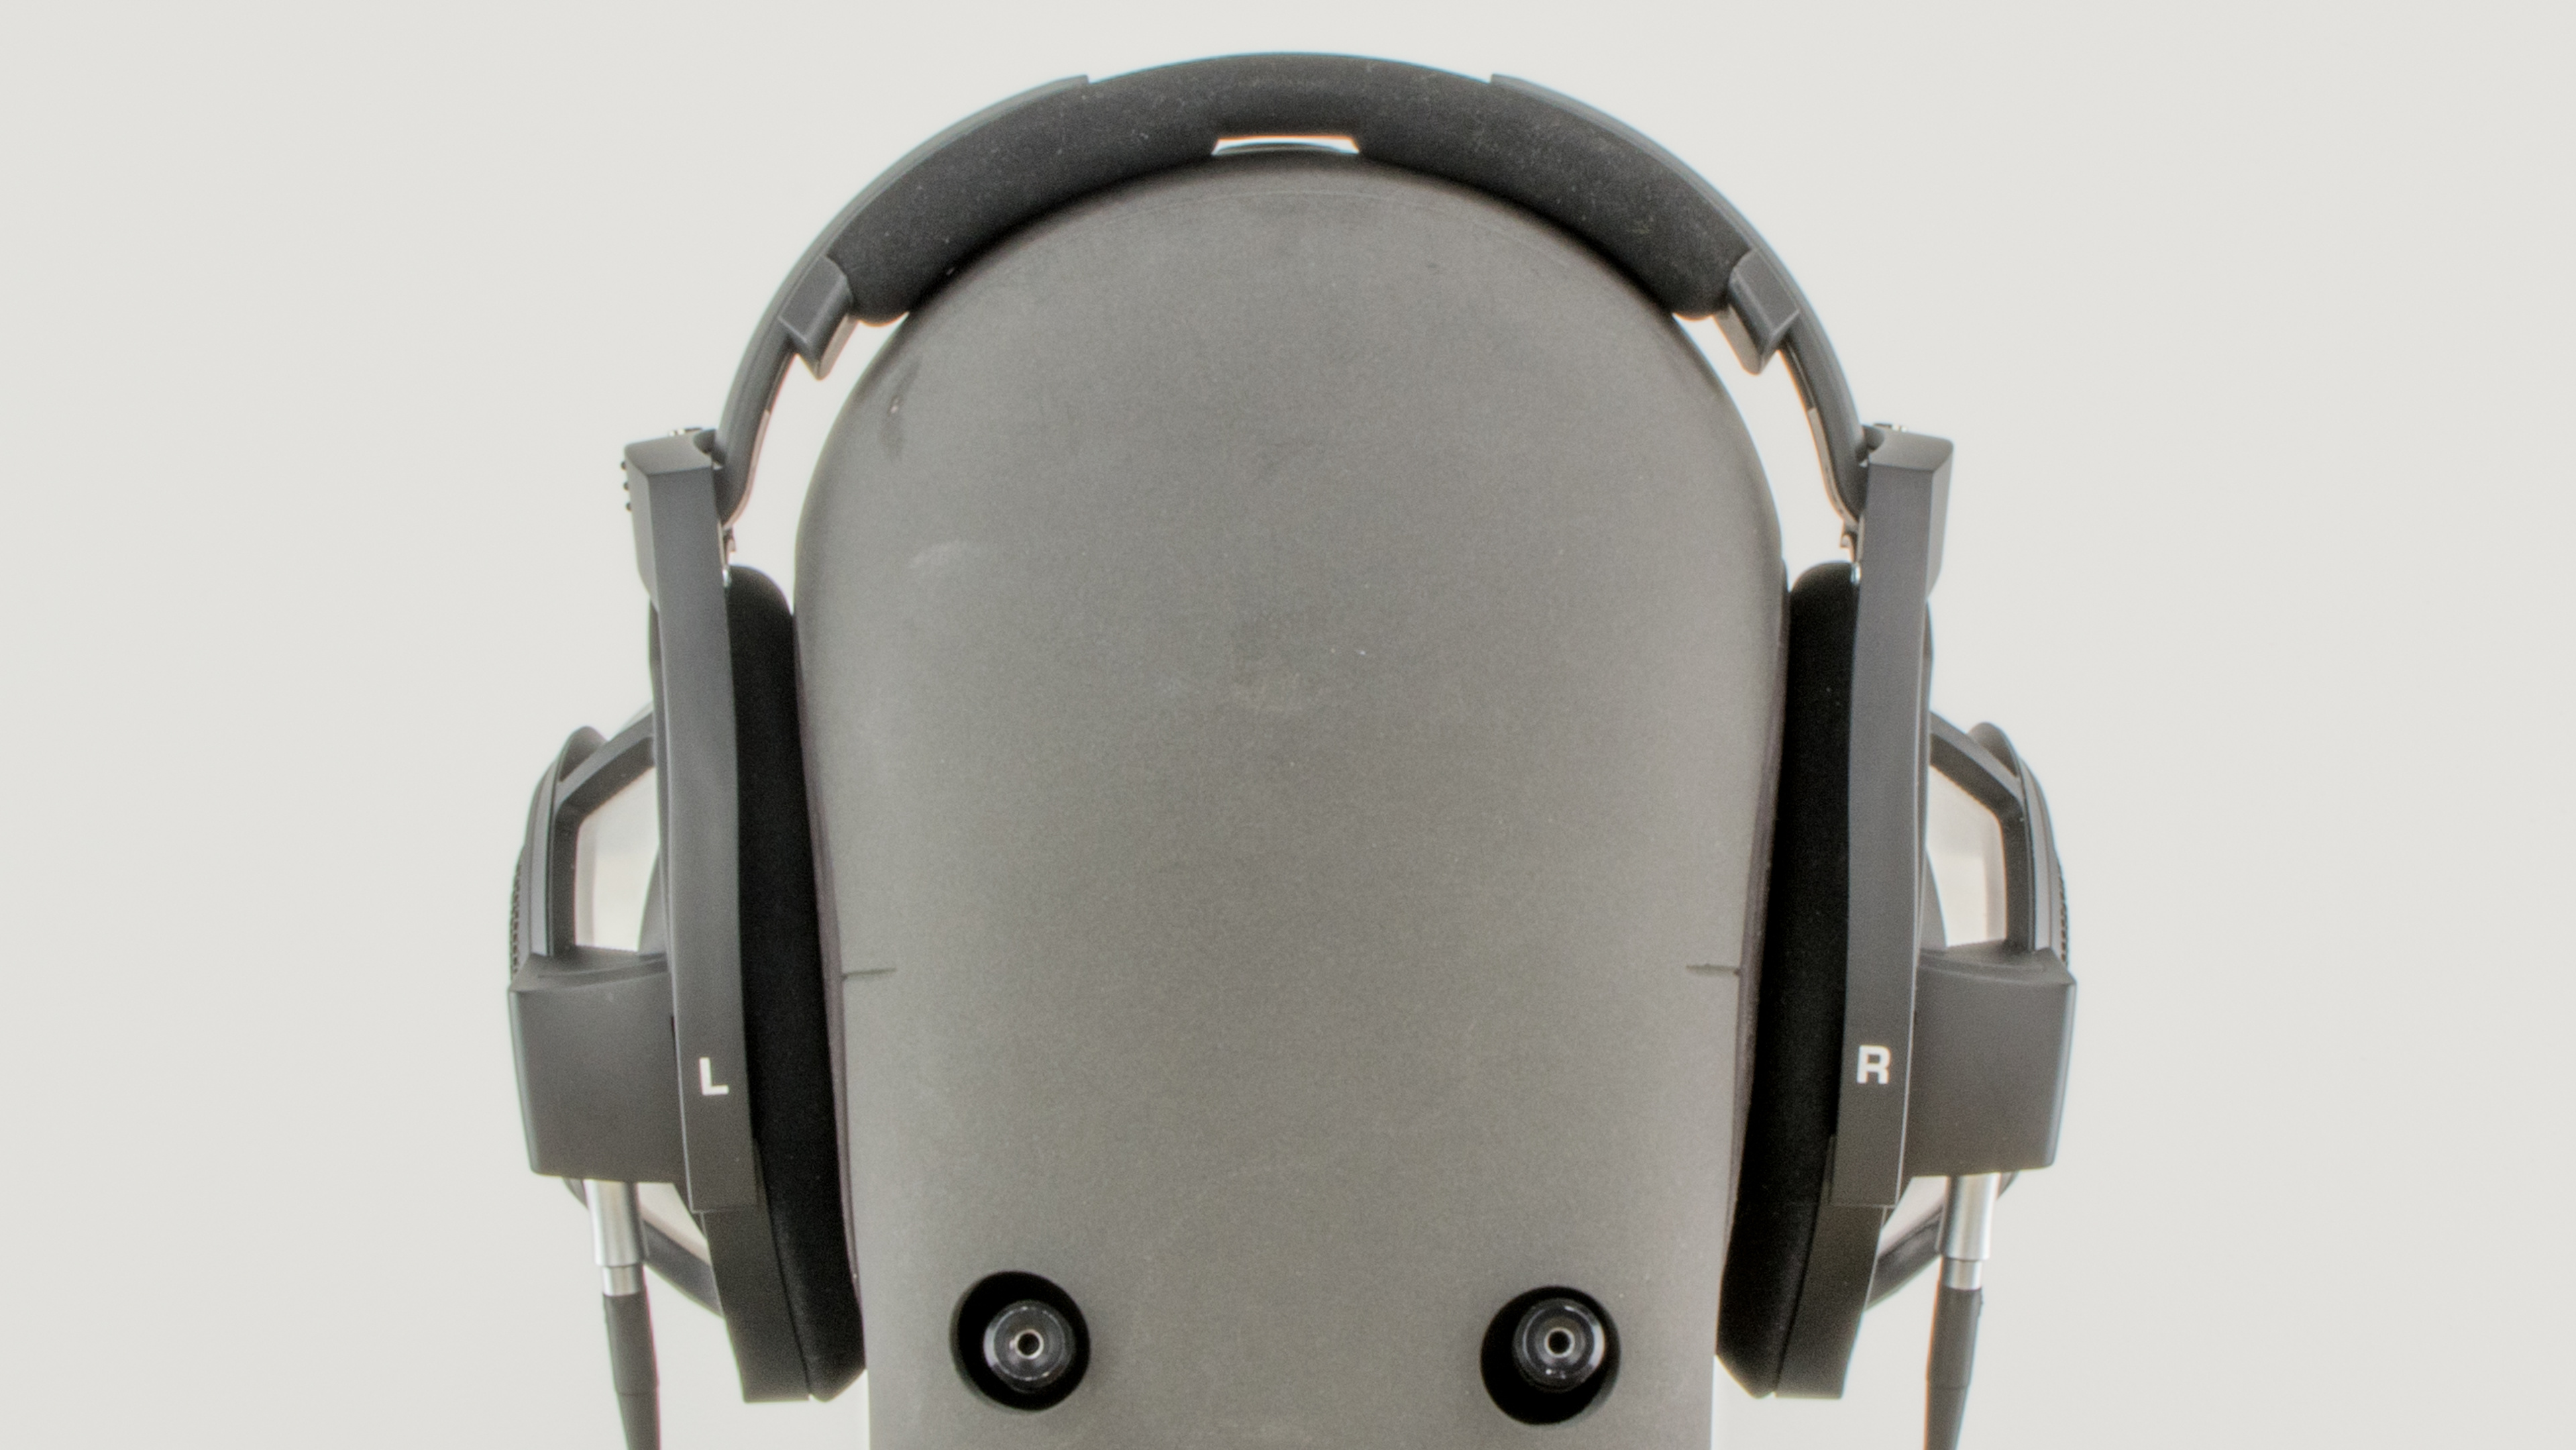 Sennheiser Hd 800 S Review Dynamic Stereo Headphone Stability Picture